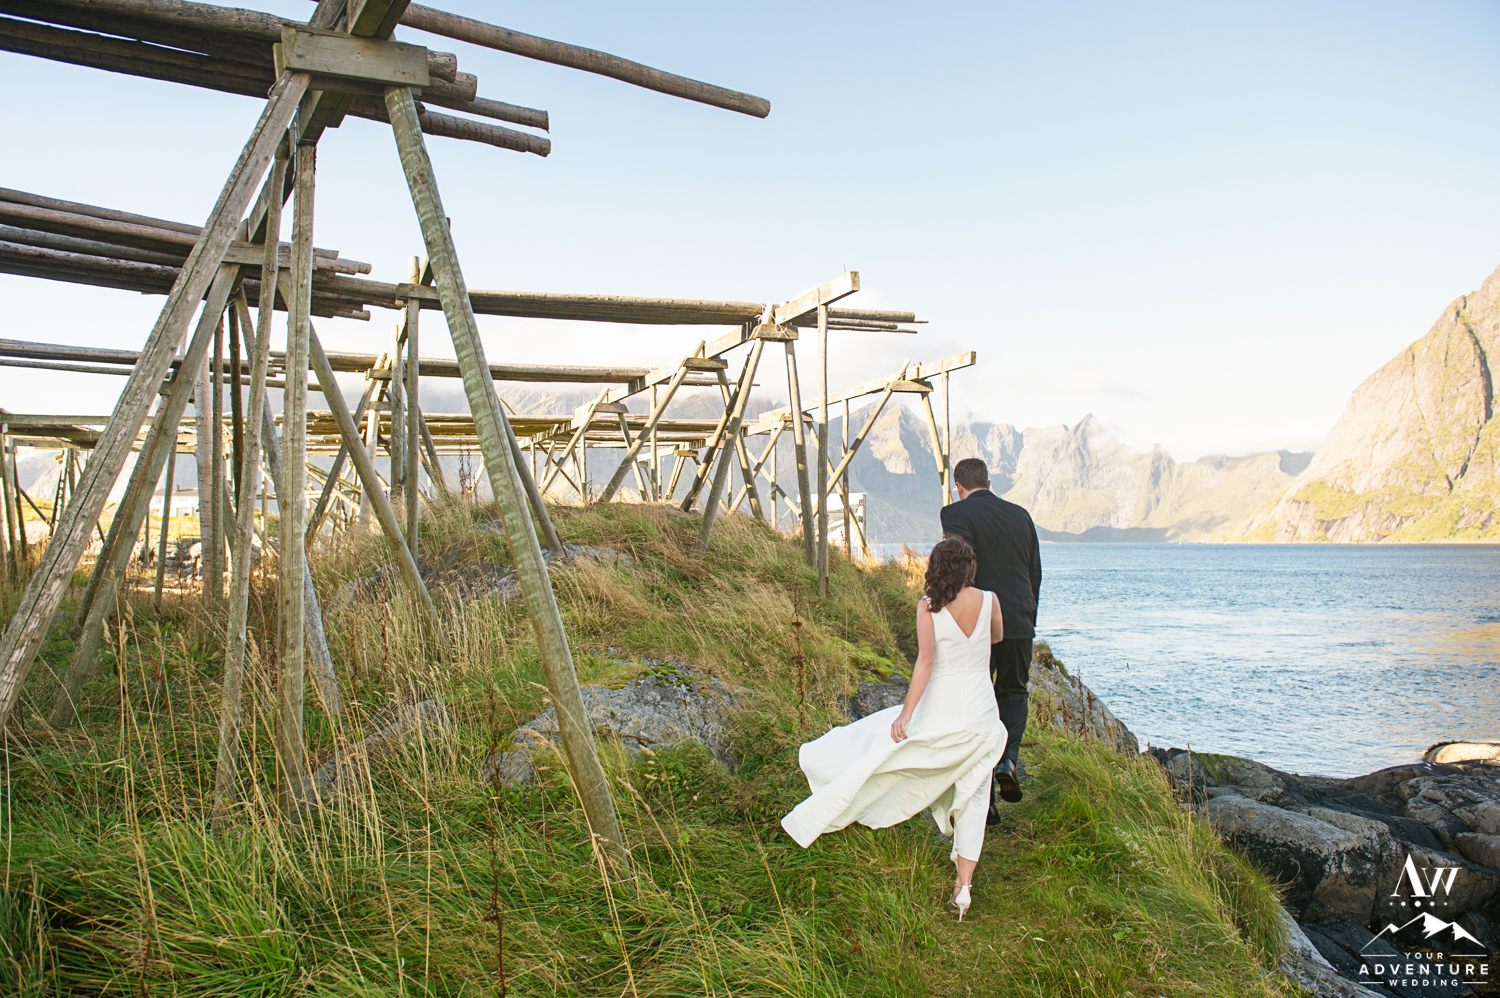 lofoten-islands-wedding-photos-your-adventure-wedding-30